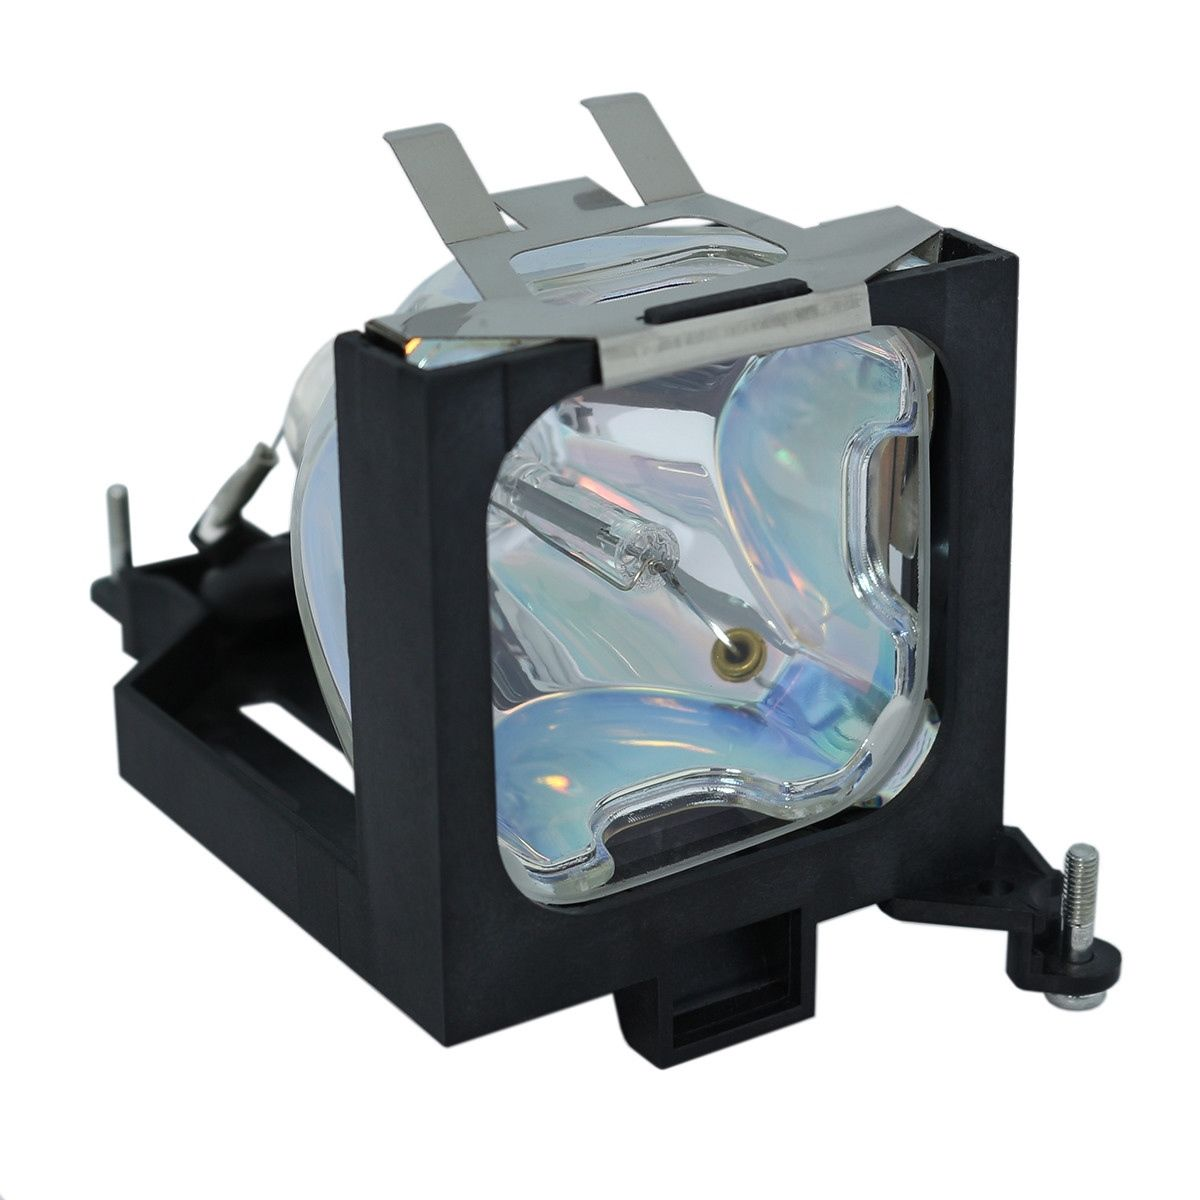 POA-LMP78 LMP78 610-317-7038 for Sanyo PLC-SW31 PLC-SW36 Projector Bulb Lamp With Housing lamp housing for sanyo 610 3252957 6103252957 projector dlp lcd bulb